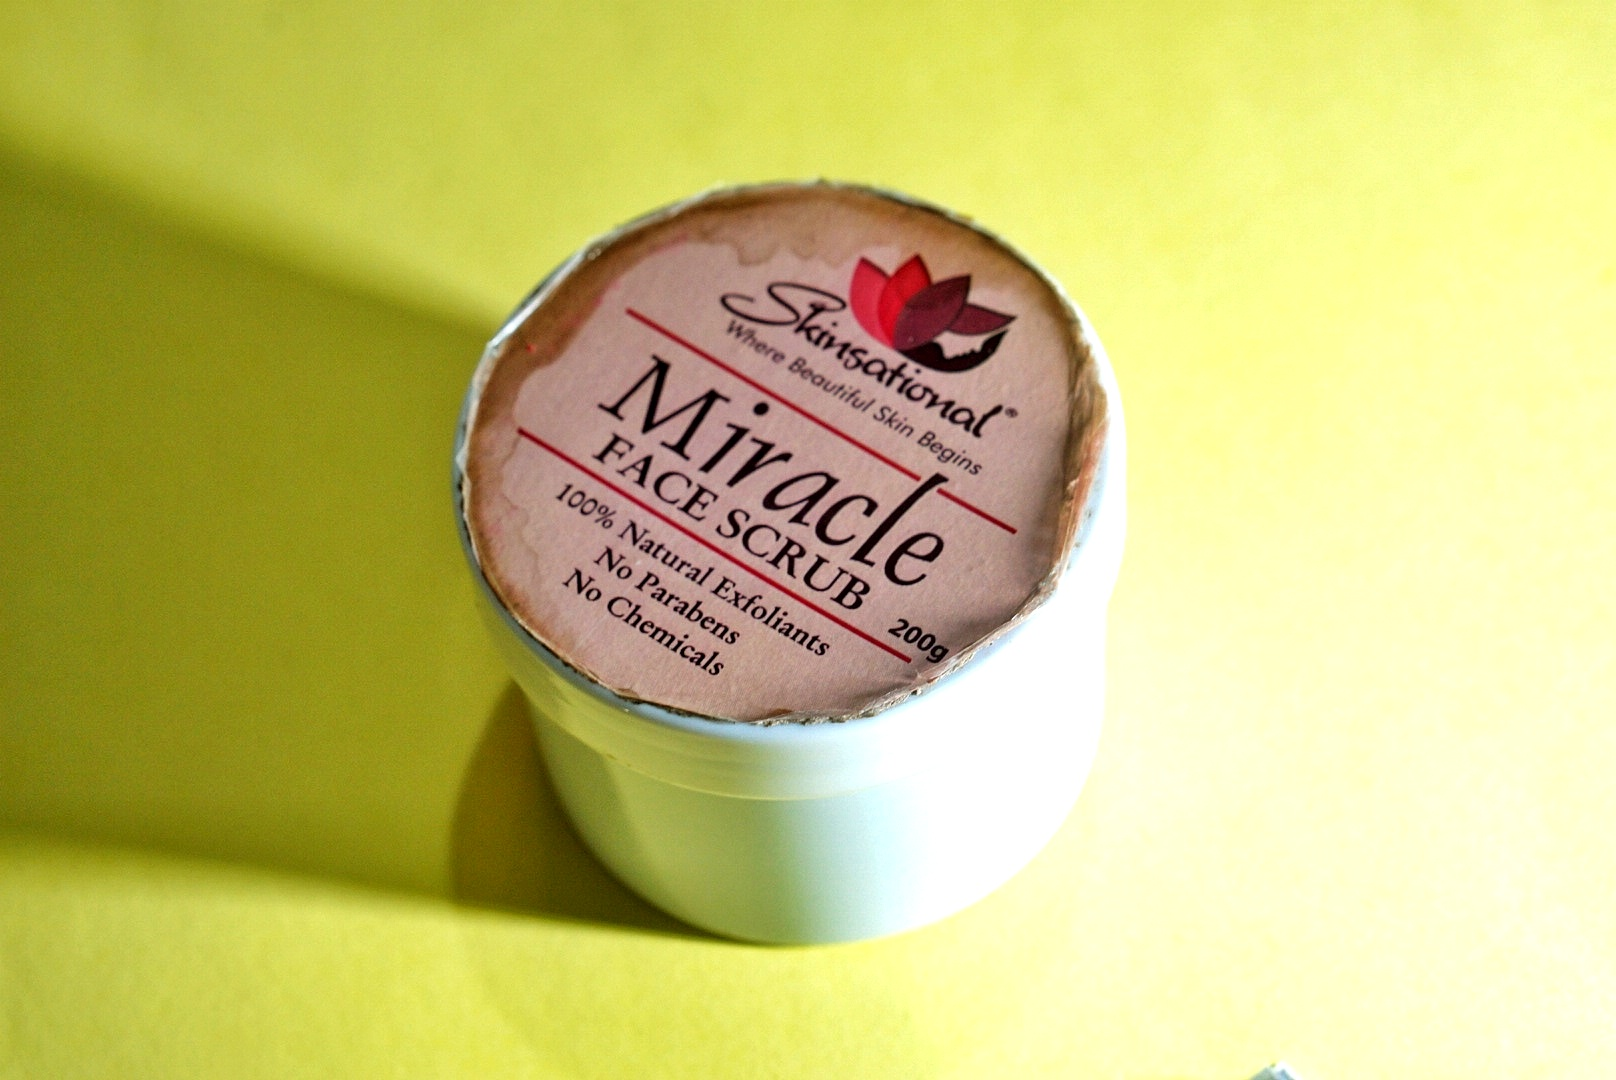 skinsational skincare nigeria miracle face soap for even skin tone and glow